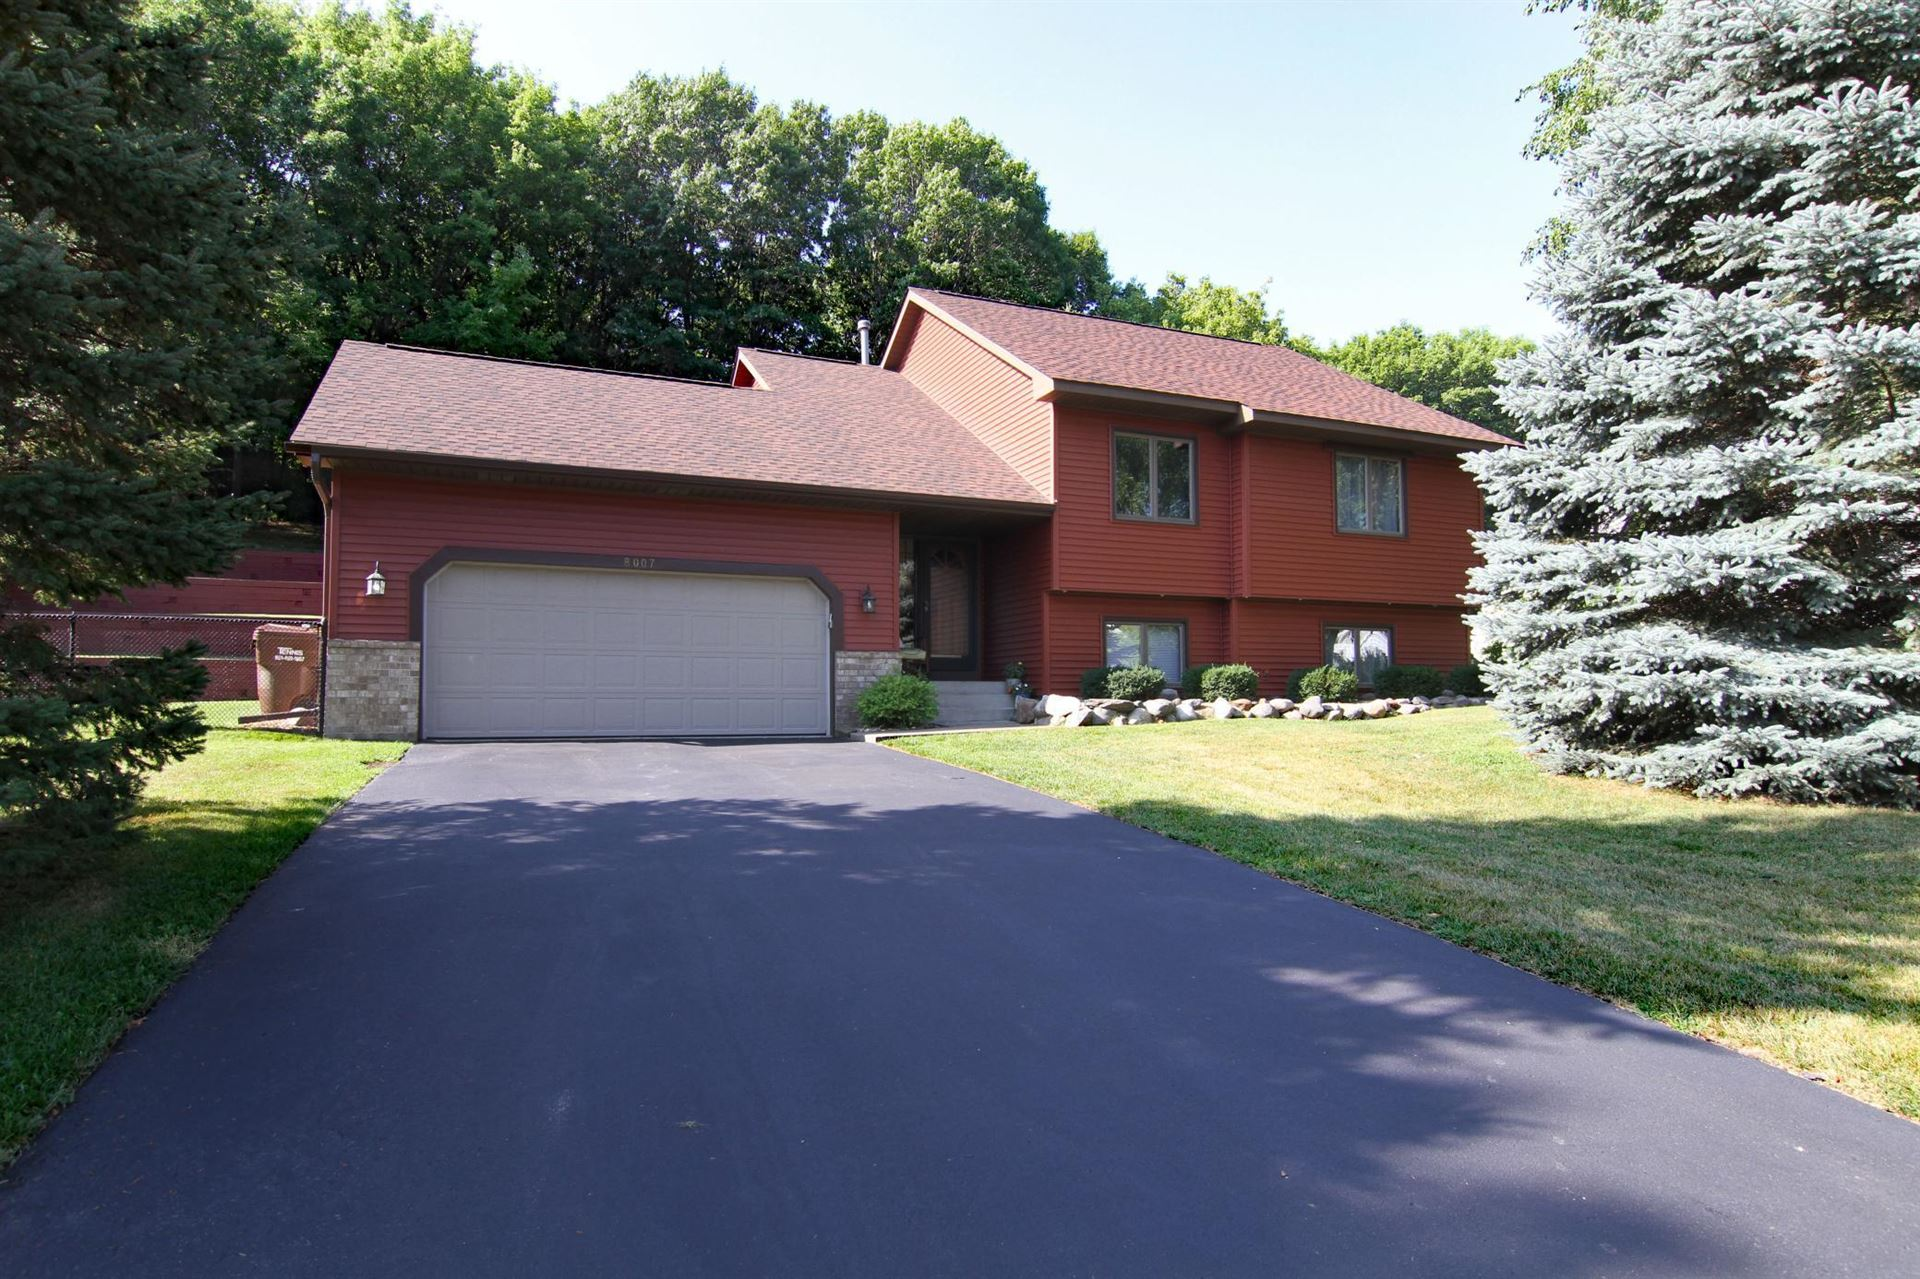 Photo of 8007 Delano Way, Inver Grove Heights, MN 55076 (MLS # 6074622)